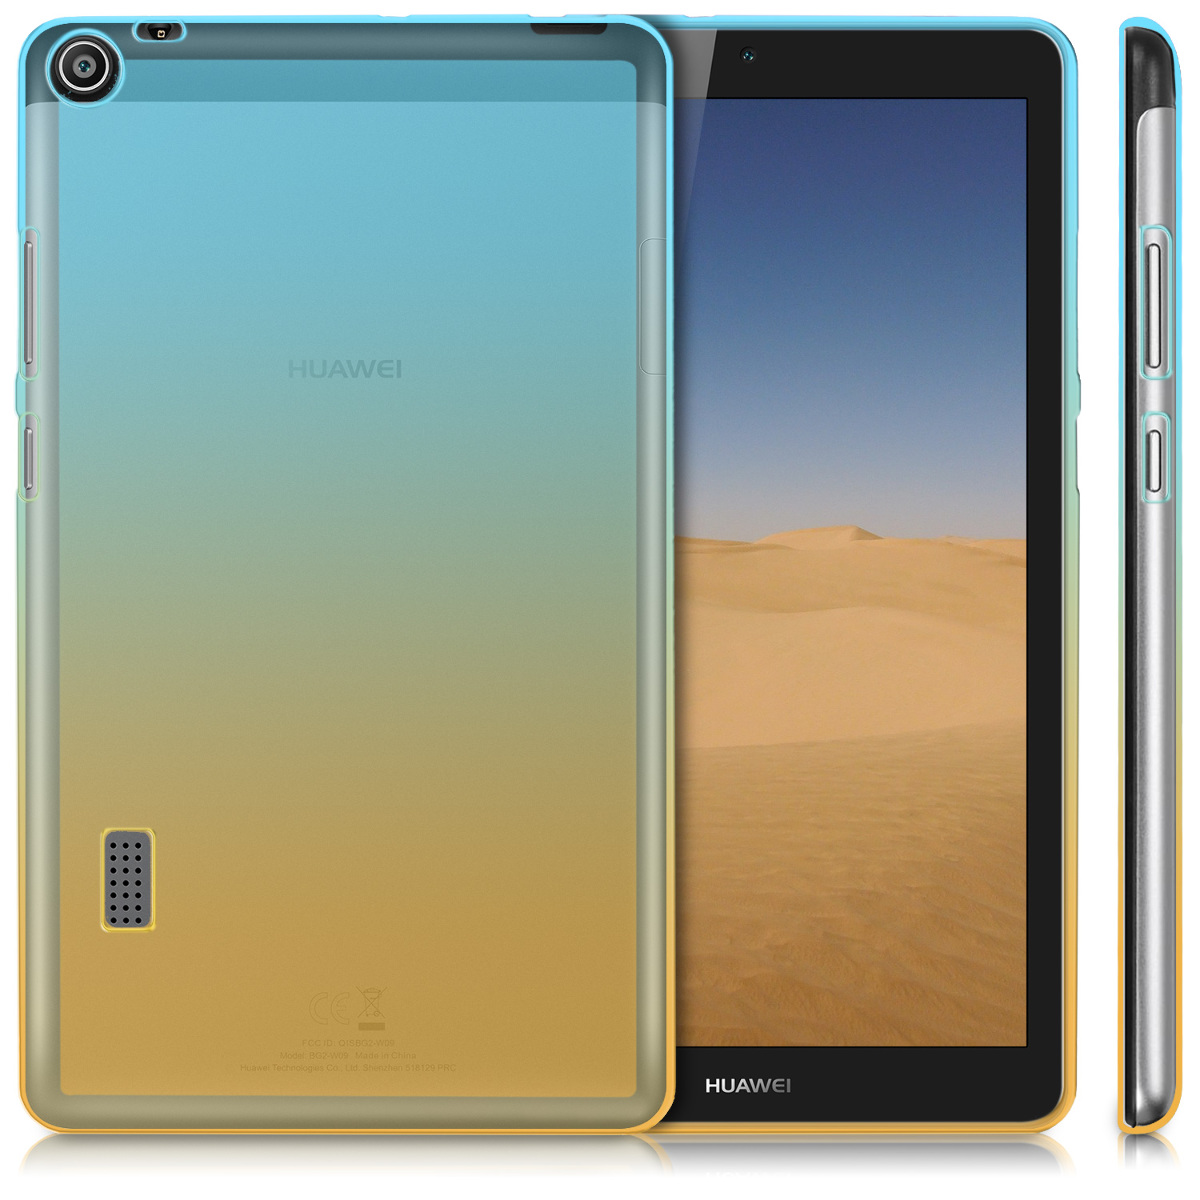 8fe4005cfa6 kwmobile TPU Silicone Case for Huawei MediaPad T3 7.0 - Soft Flexible Shock  Absorbent Protective Cover - Blue / Yellow / Transparent. ‹ › ‹ › ‹ › ‹ ›